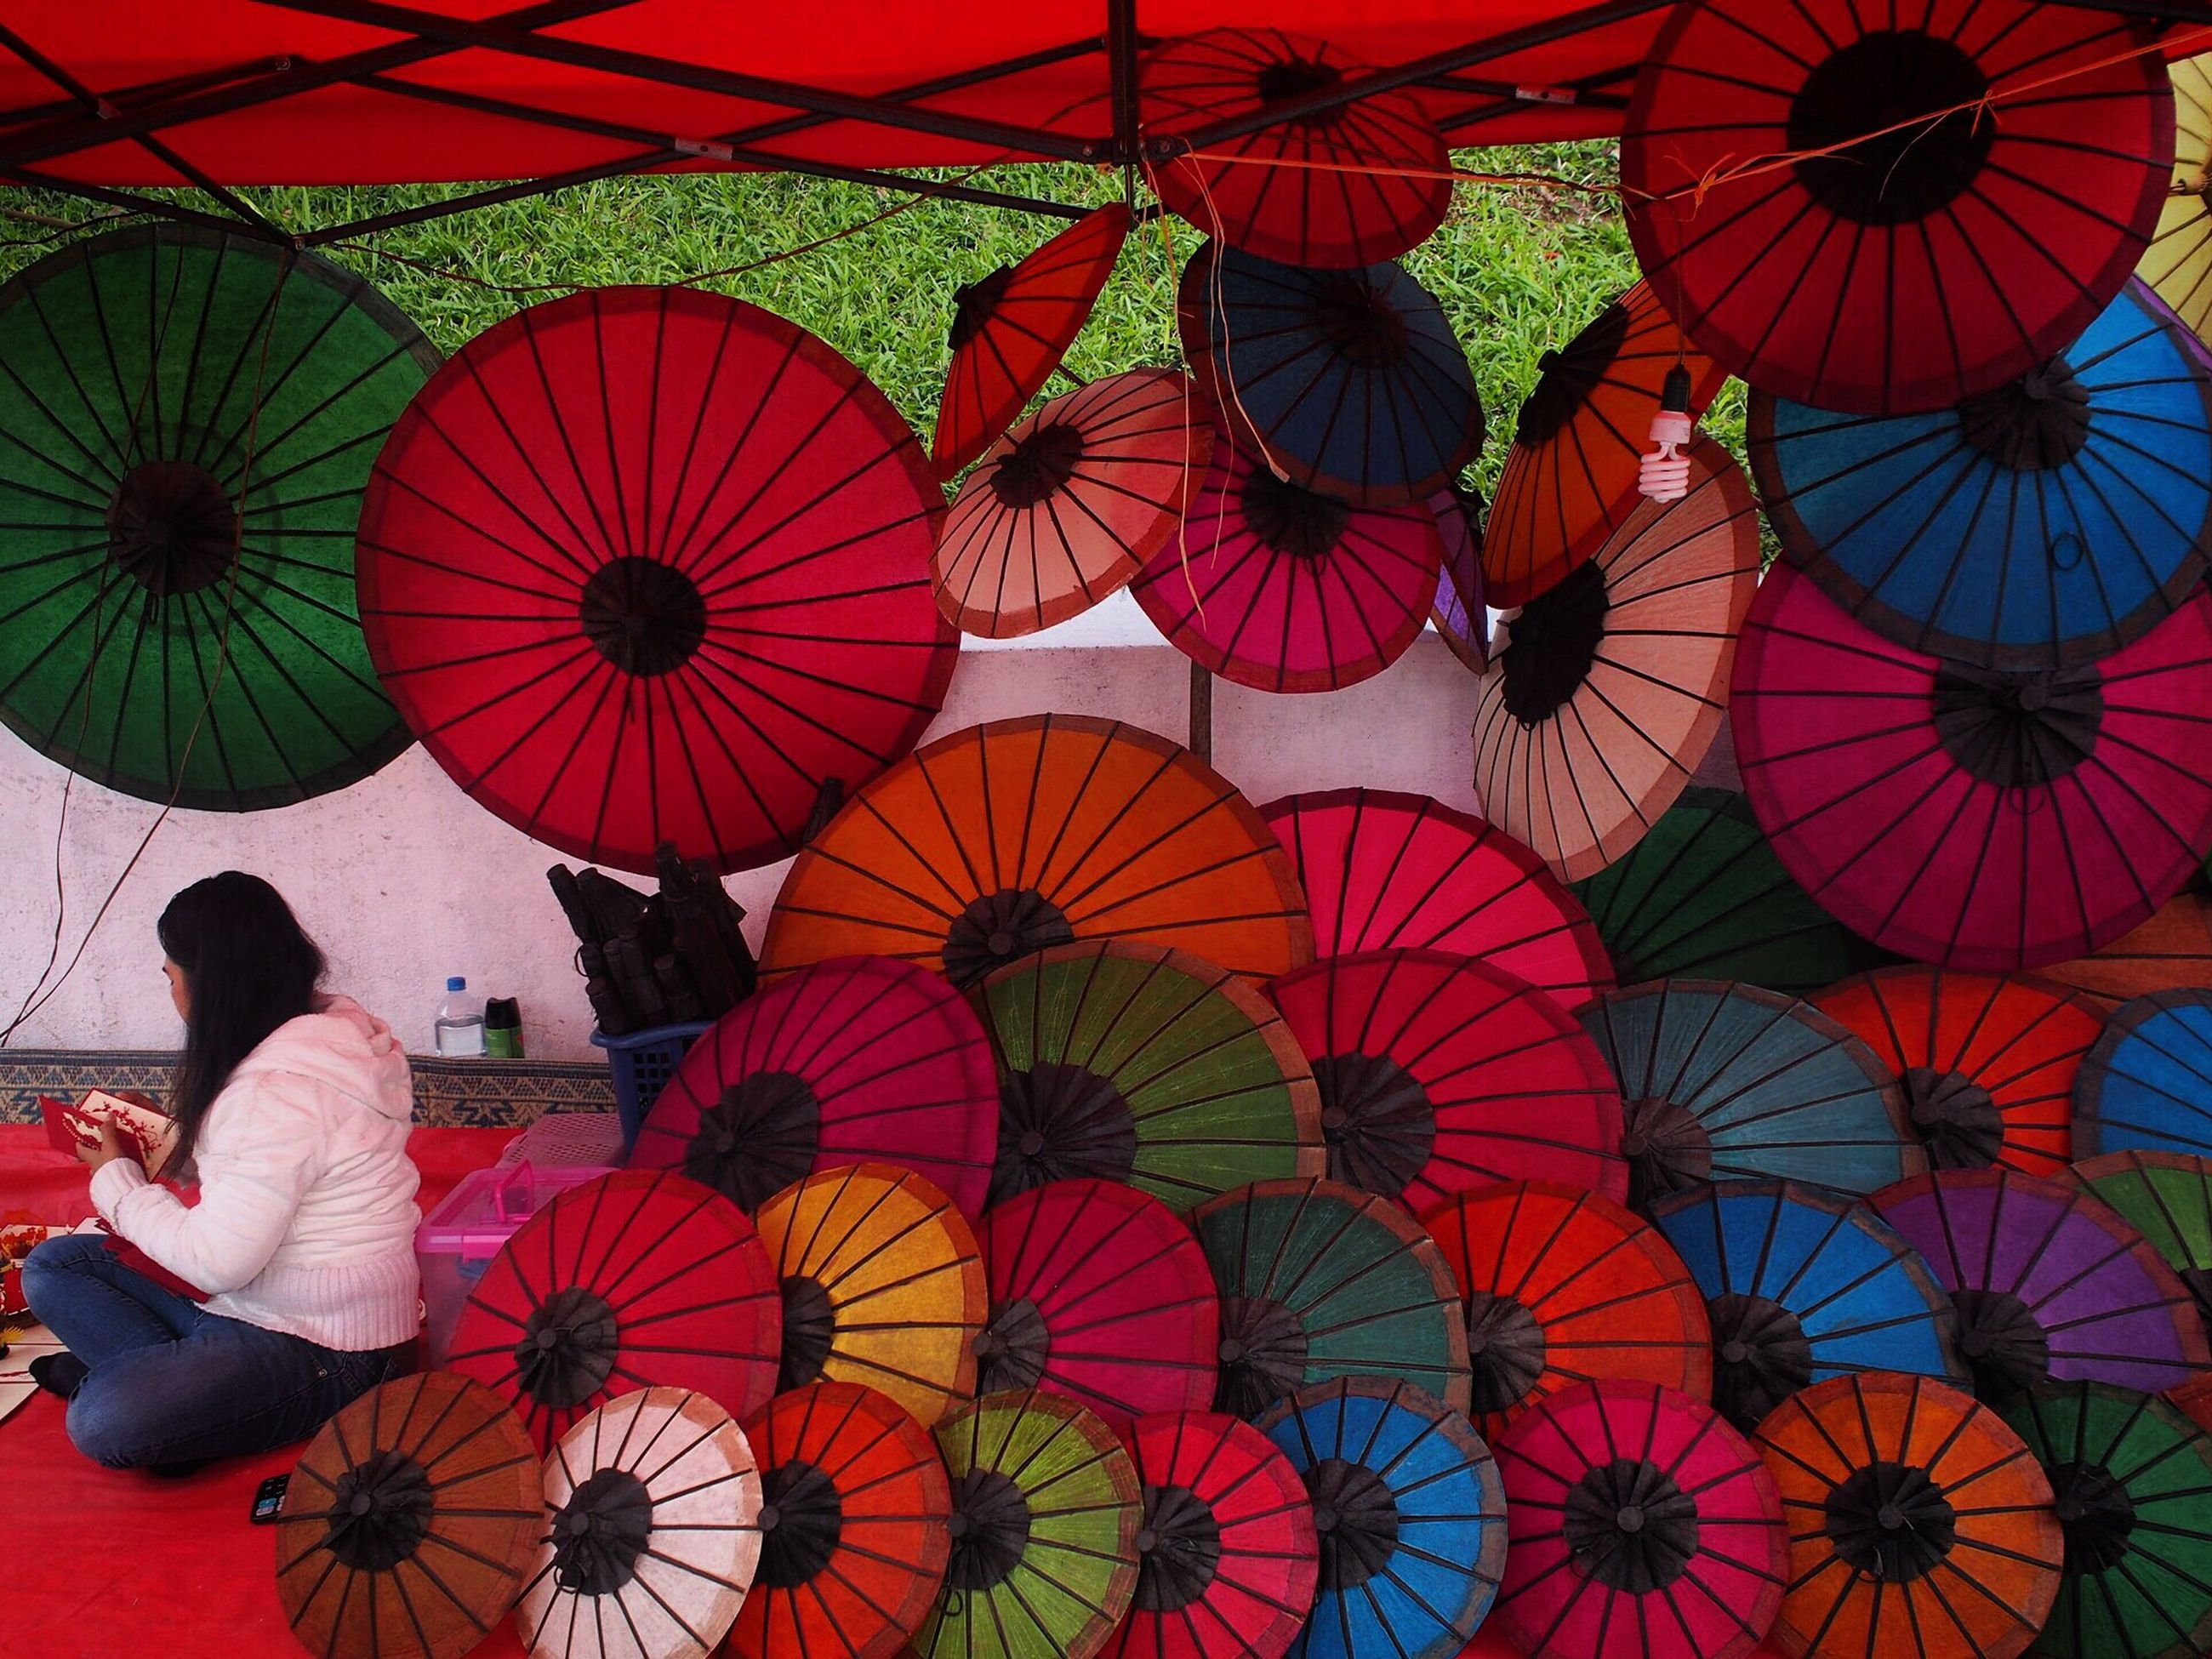 multi colored, art and craft, colorful, pattern, variation, decoration, art, creativity, indoors, full frame, backgrounds, large group of objects, hanging, umbrella, abundance, design, red, in a row, balloon, low angle view